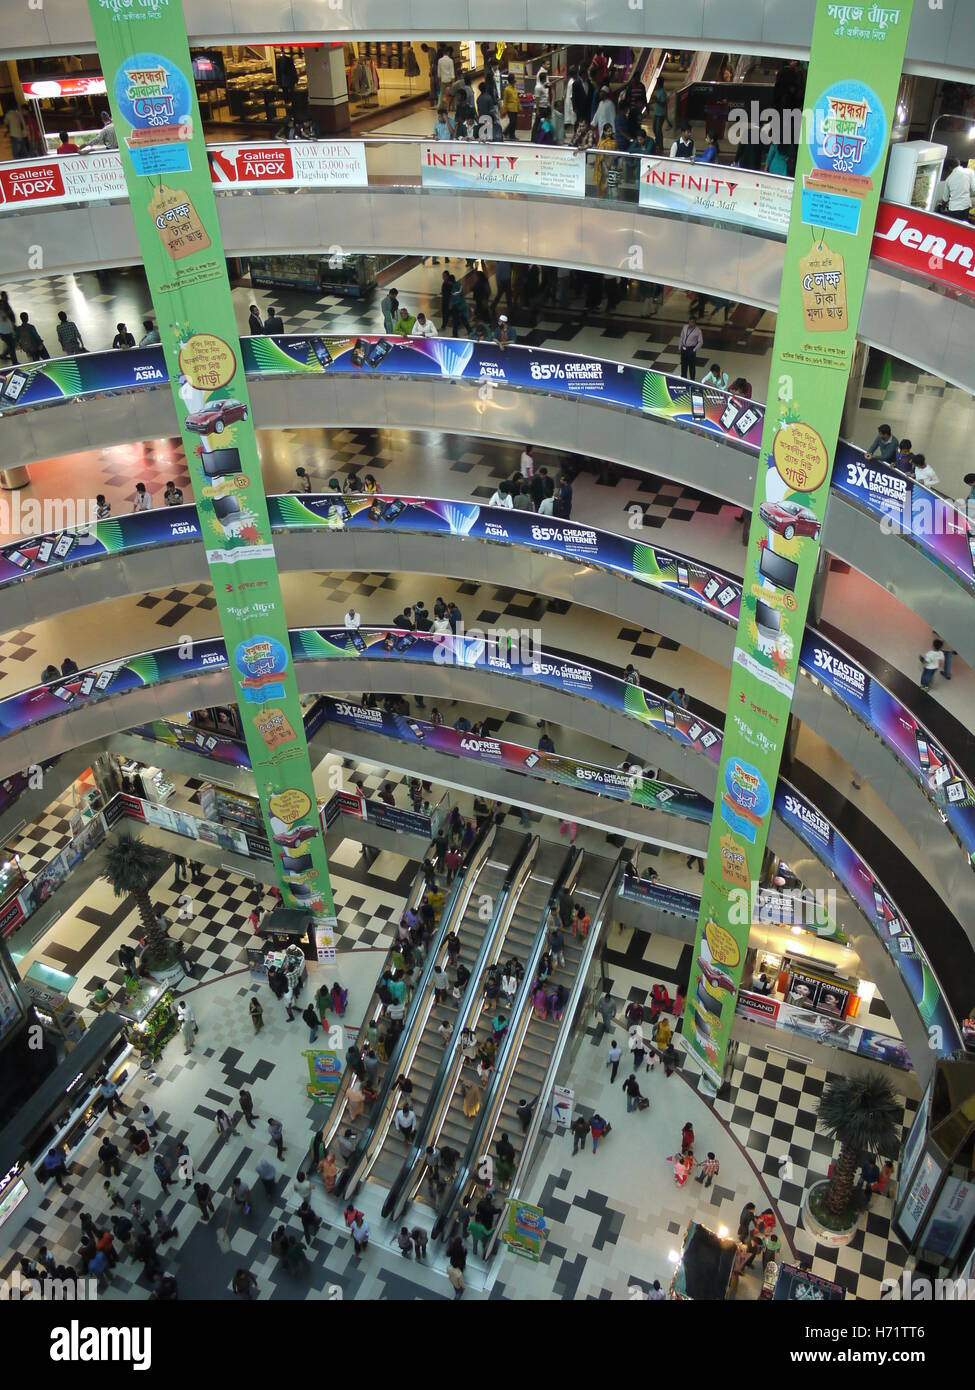 A new giant shopping center opened in the center of Dhaka, Bangladesh - Stock Image